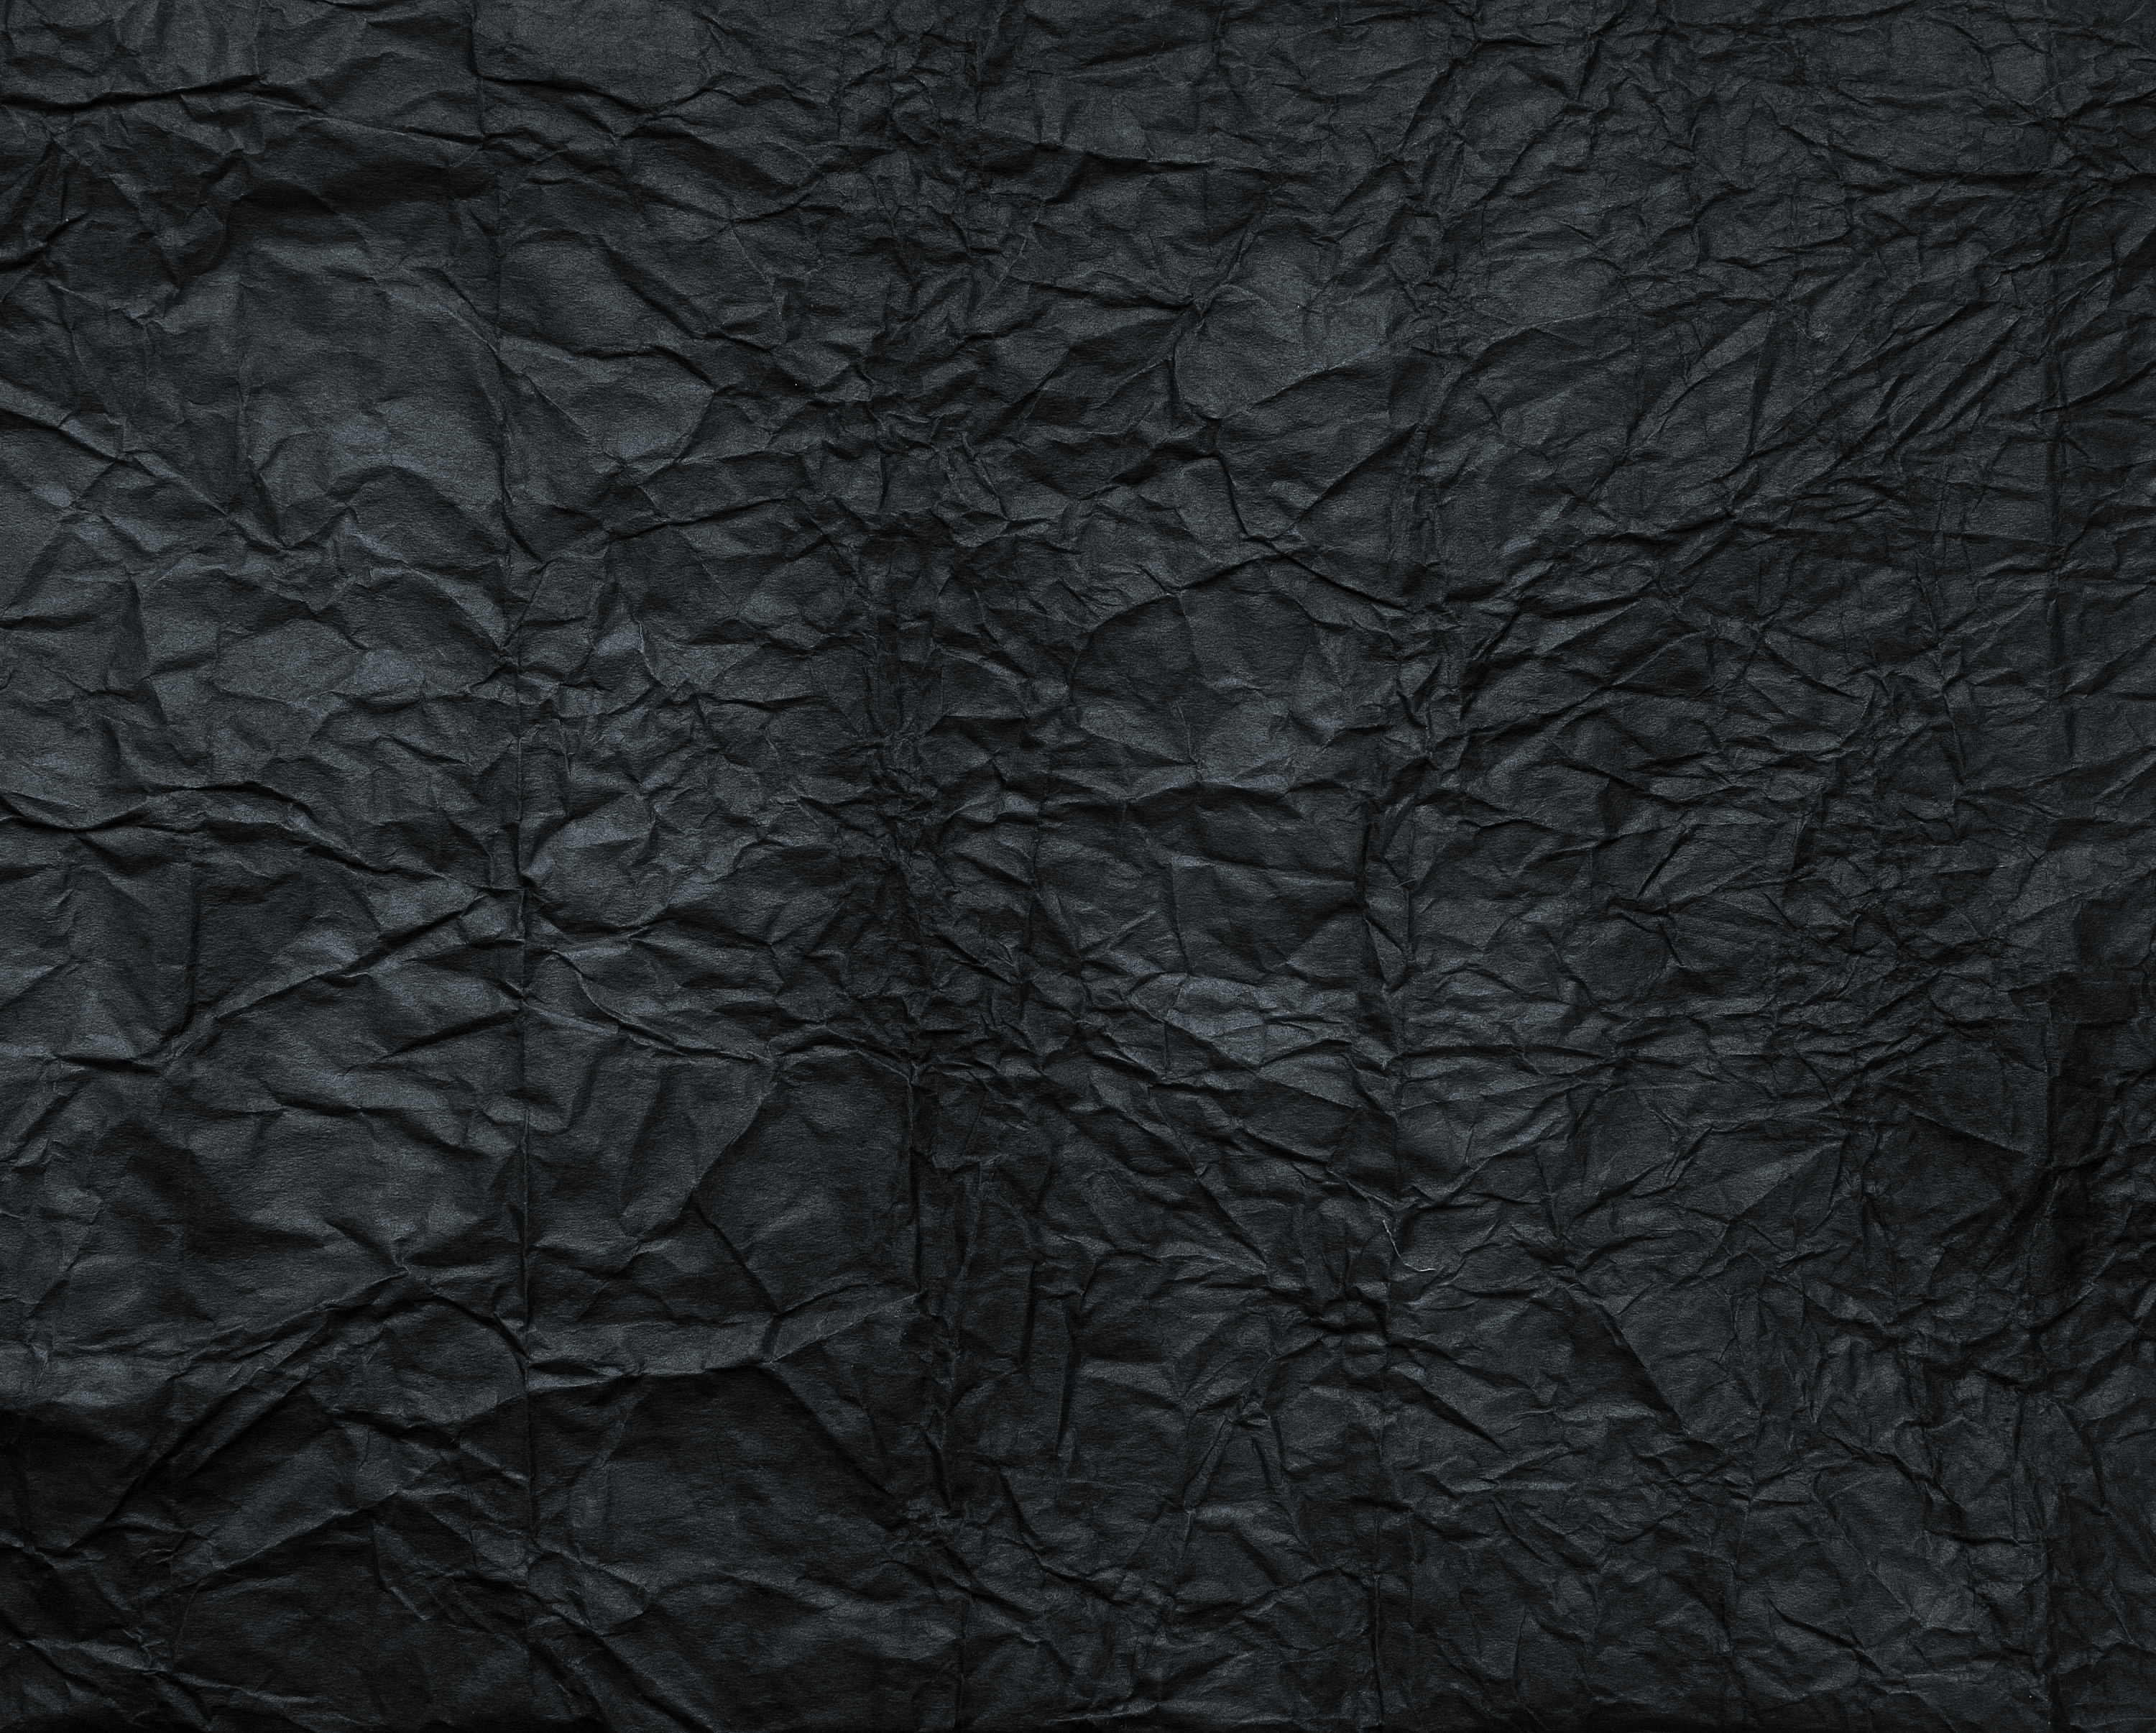 wildtextures-creased-black-paper-texture